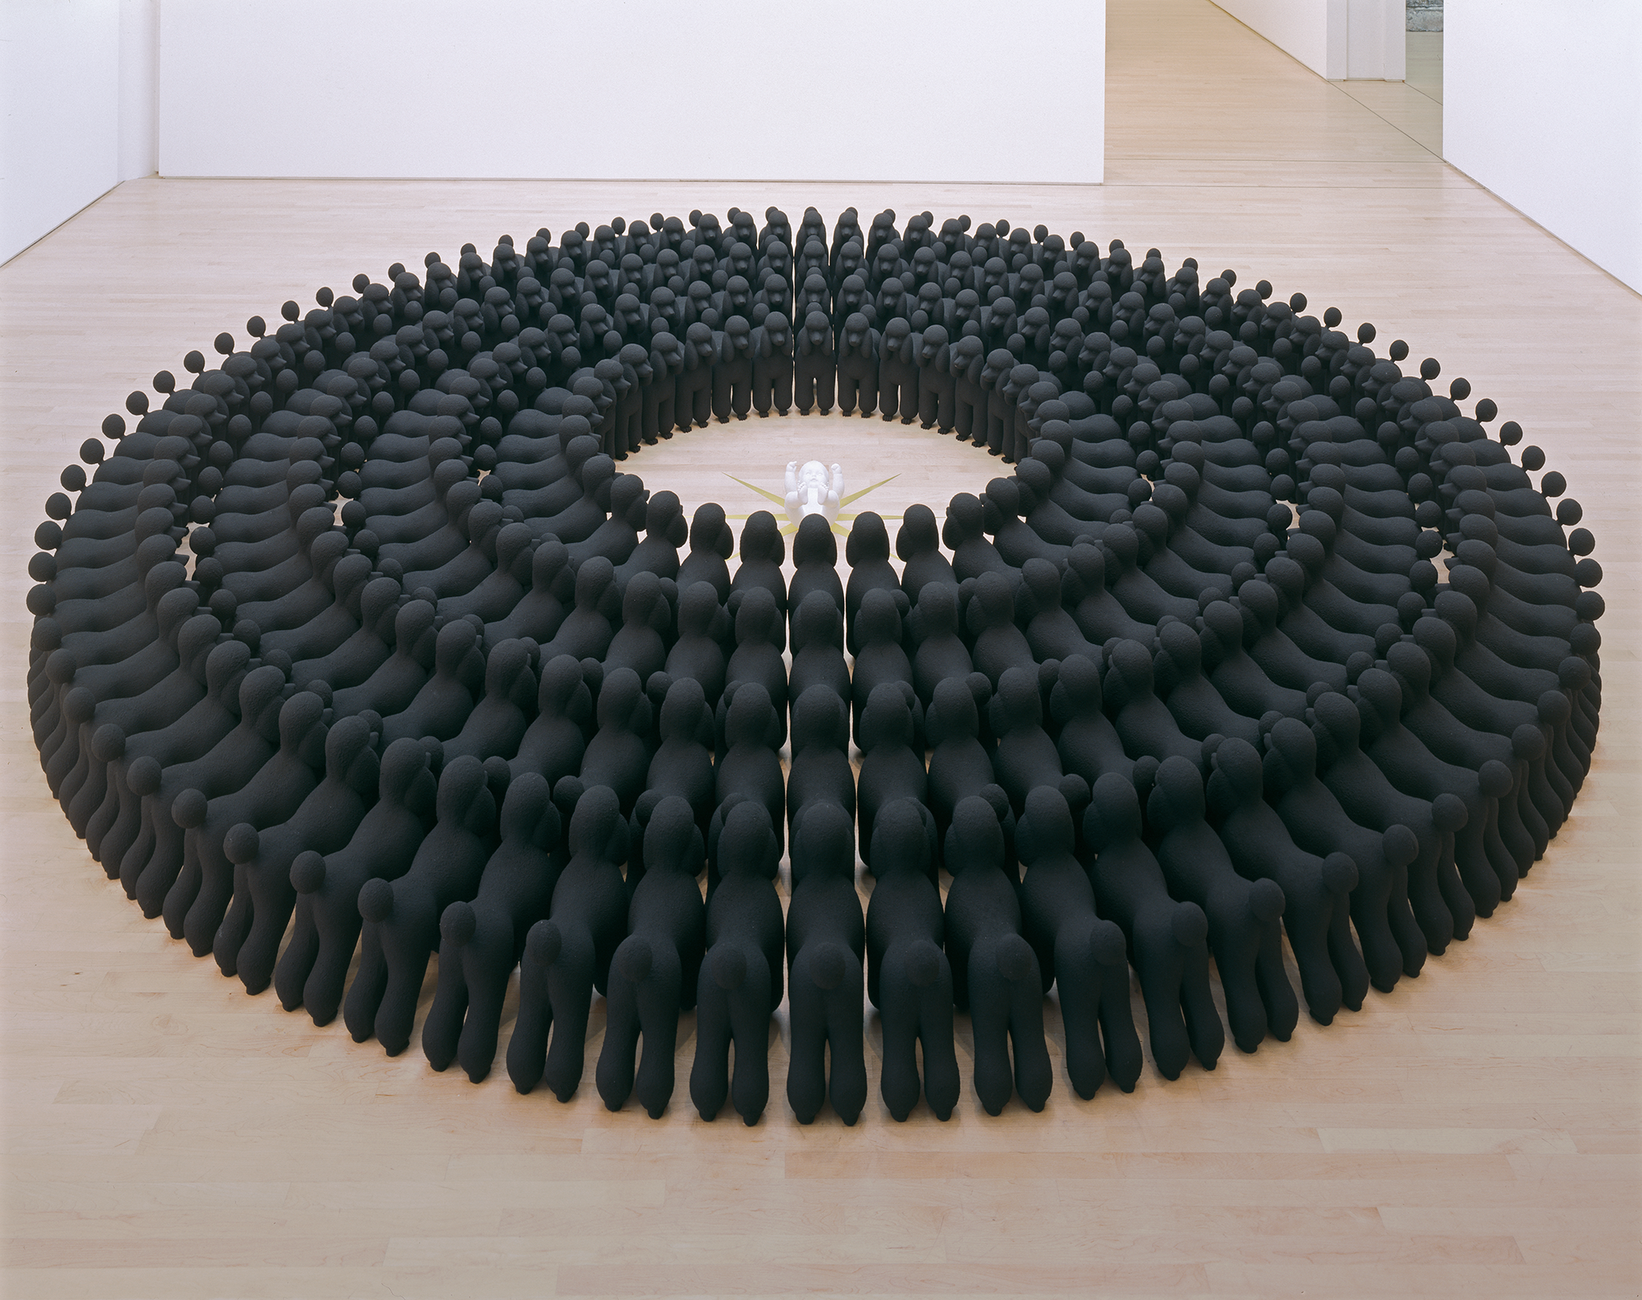 Concentric circles of black poodle sculptures, facing inward, surrounding a white baby figure lying on a gold star